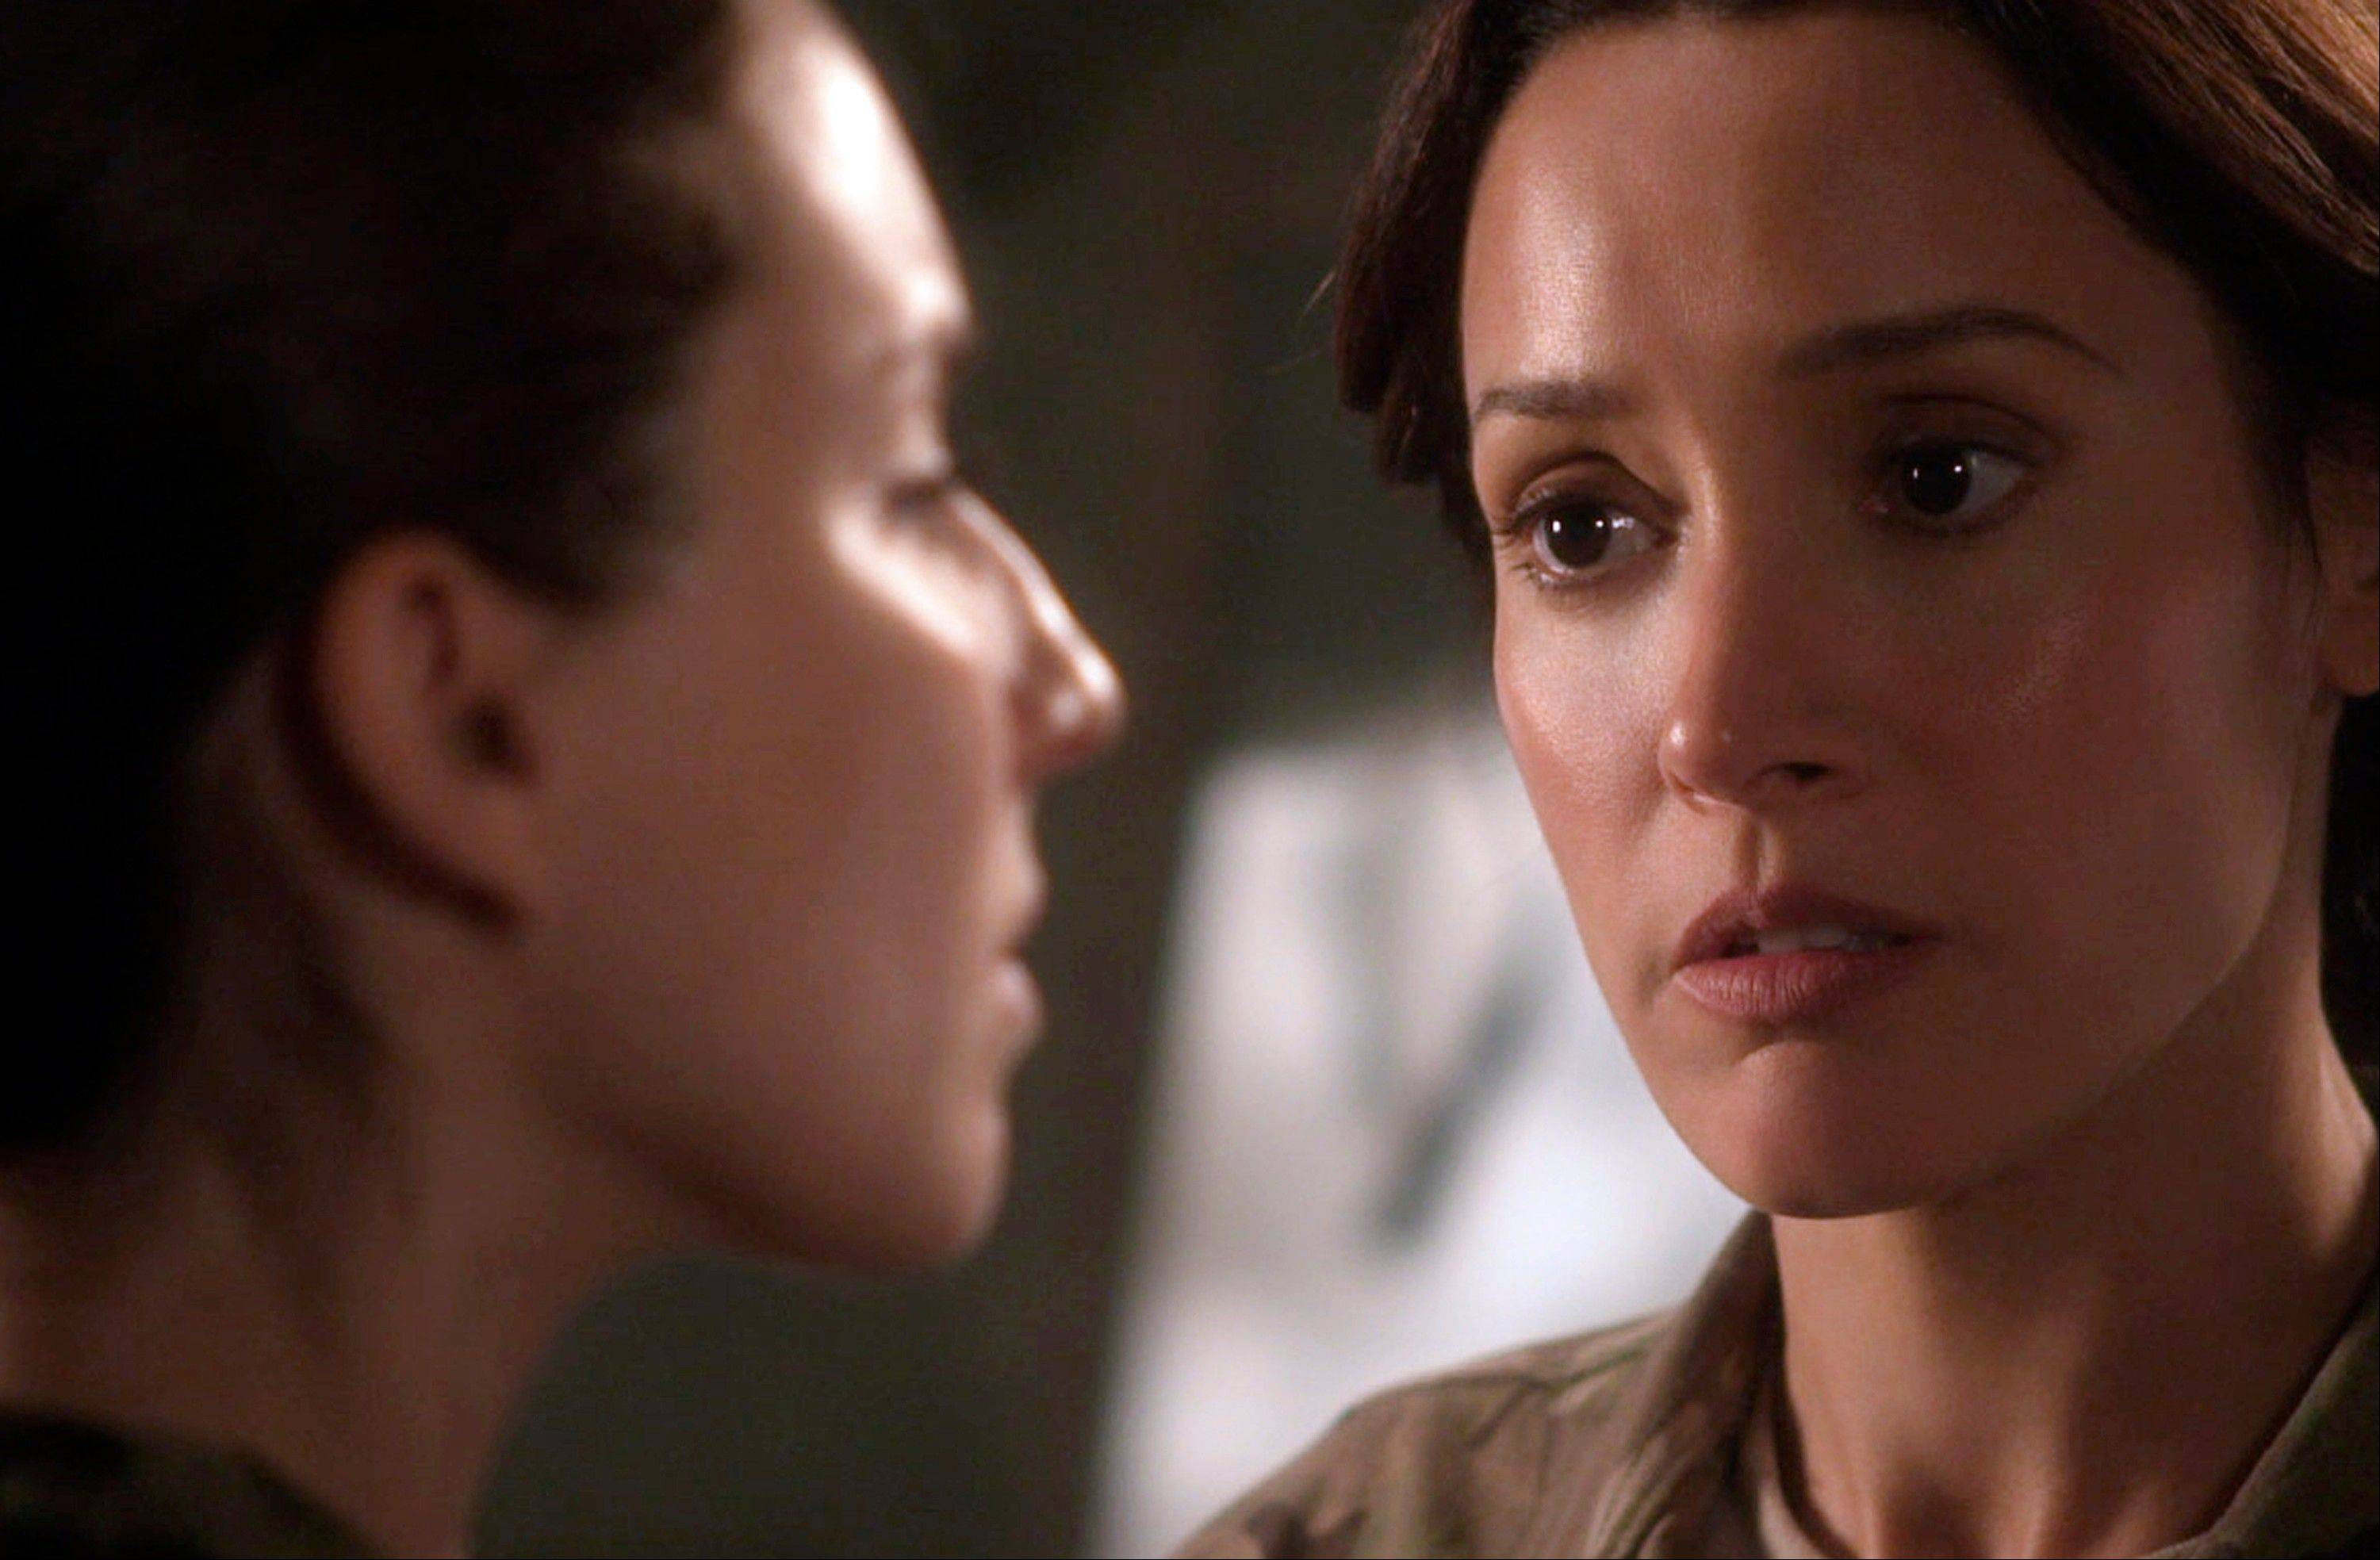 Jennifer Beals, right, as Maj. Jo Stone in �Lauren,� confronts co-star Troian Bellisario who plays a female soldier who reports being raped. The three-part Web series gives a close-up look at the challenges and obstacles women service members face in trying to find justice after being raped.